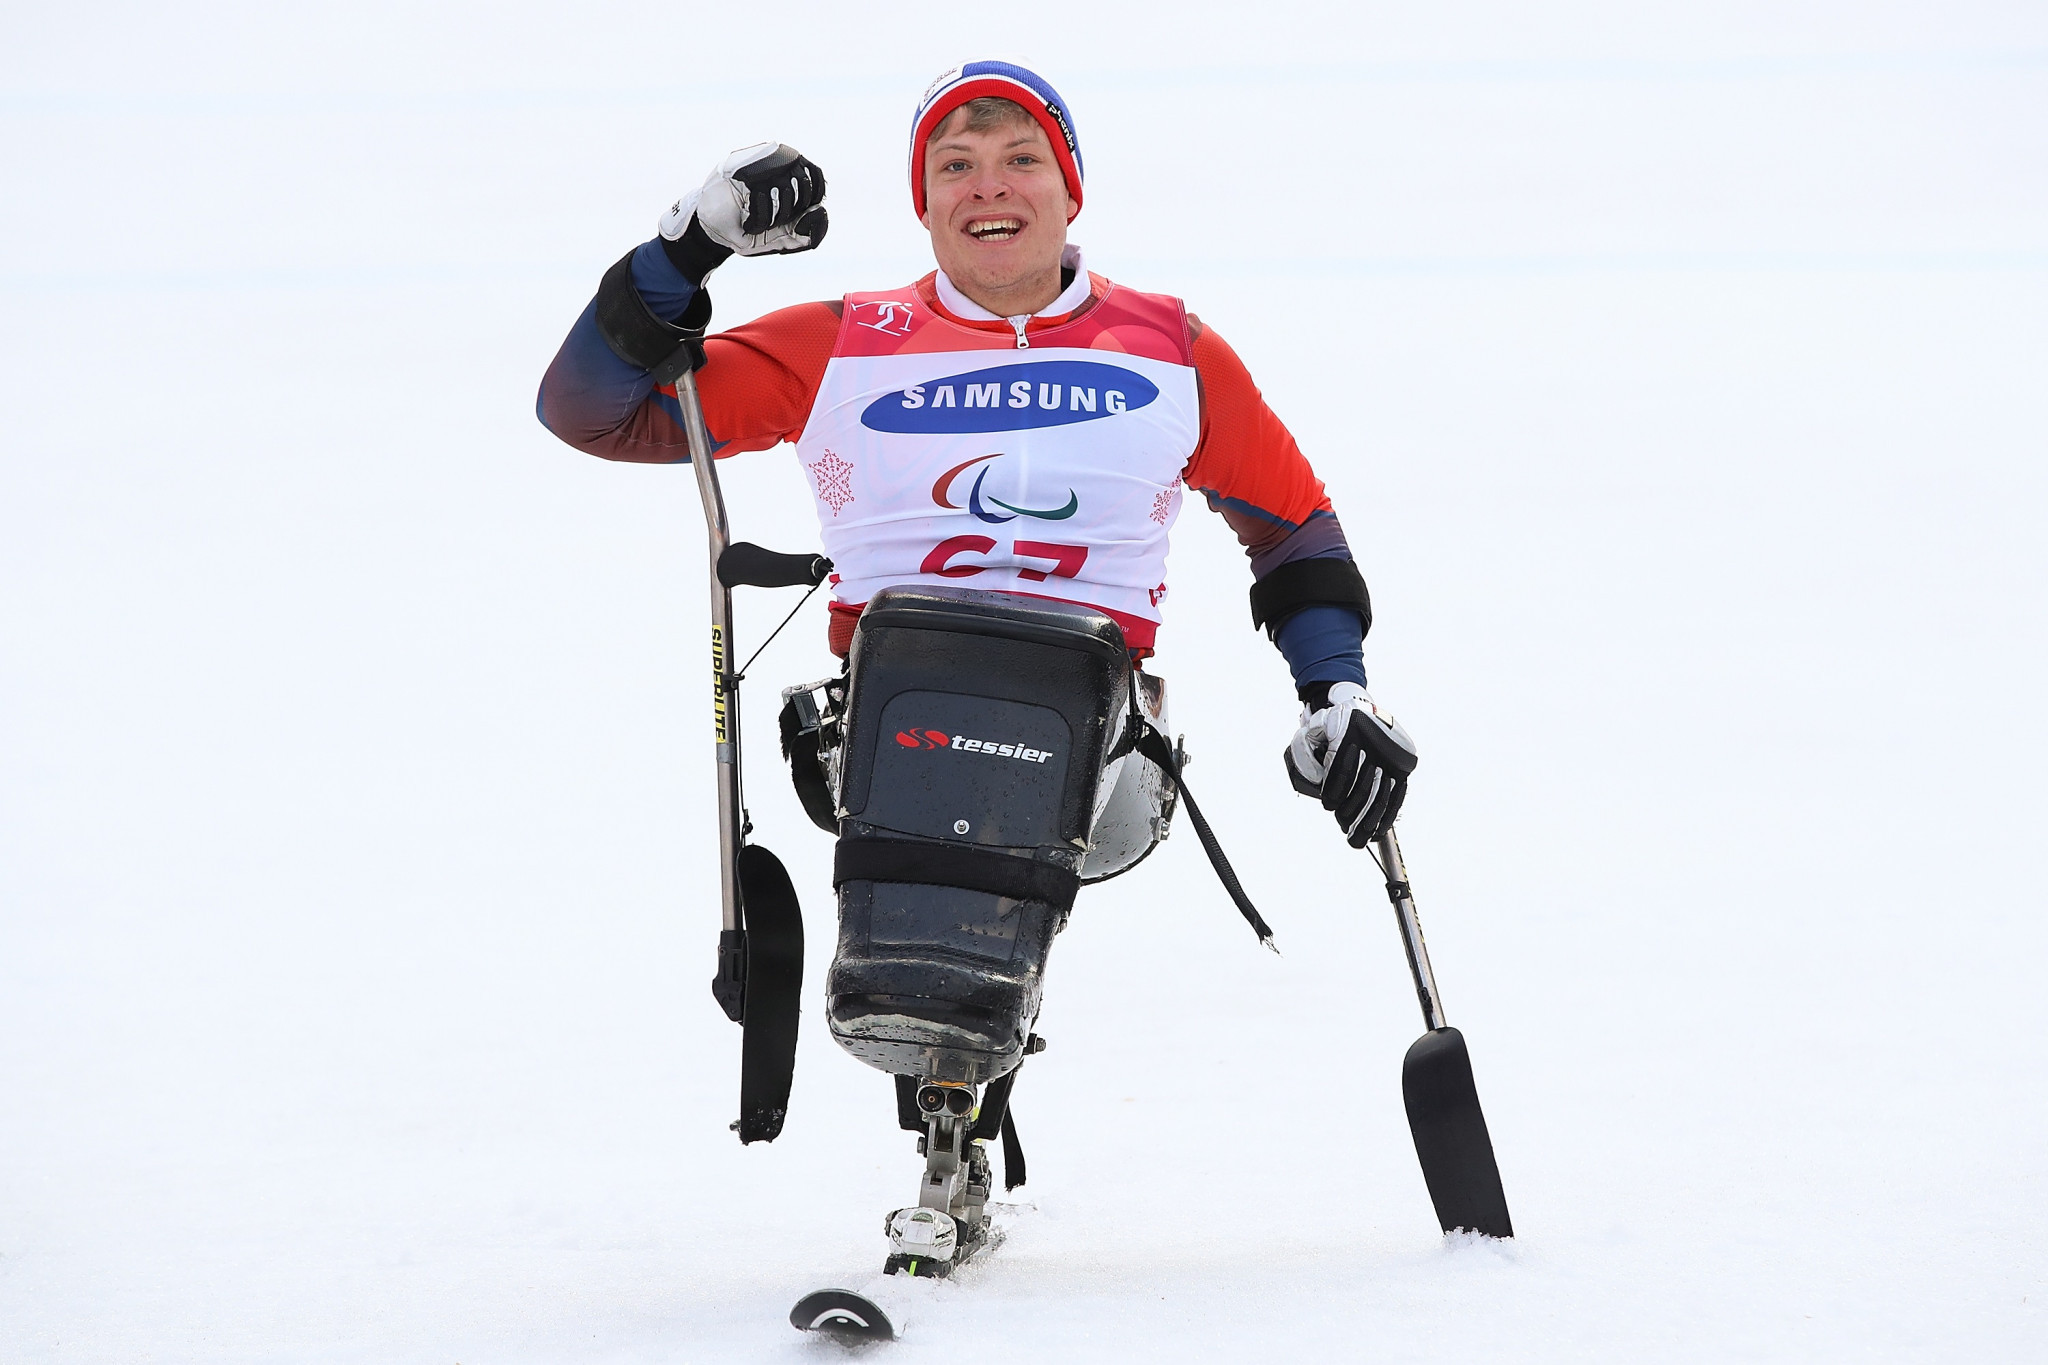 Pedersen sweeps men's sitting crystal globes as World Para Alpine Skiing confirms World Cup winners